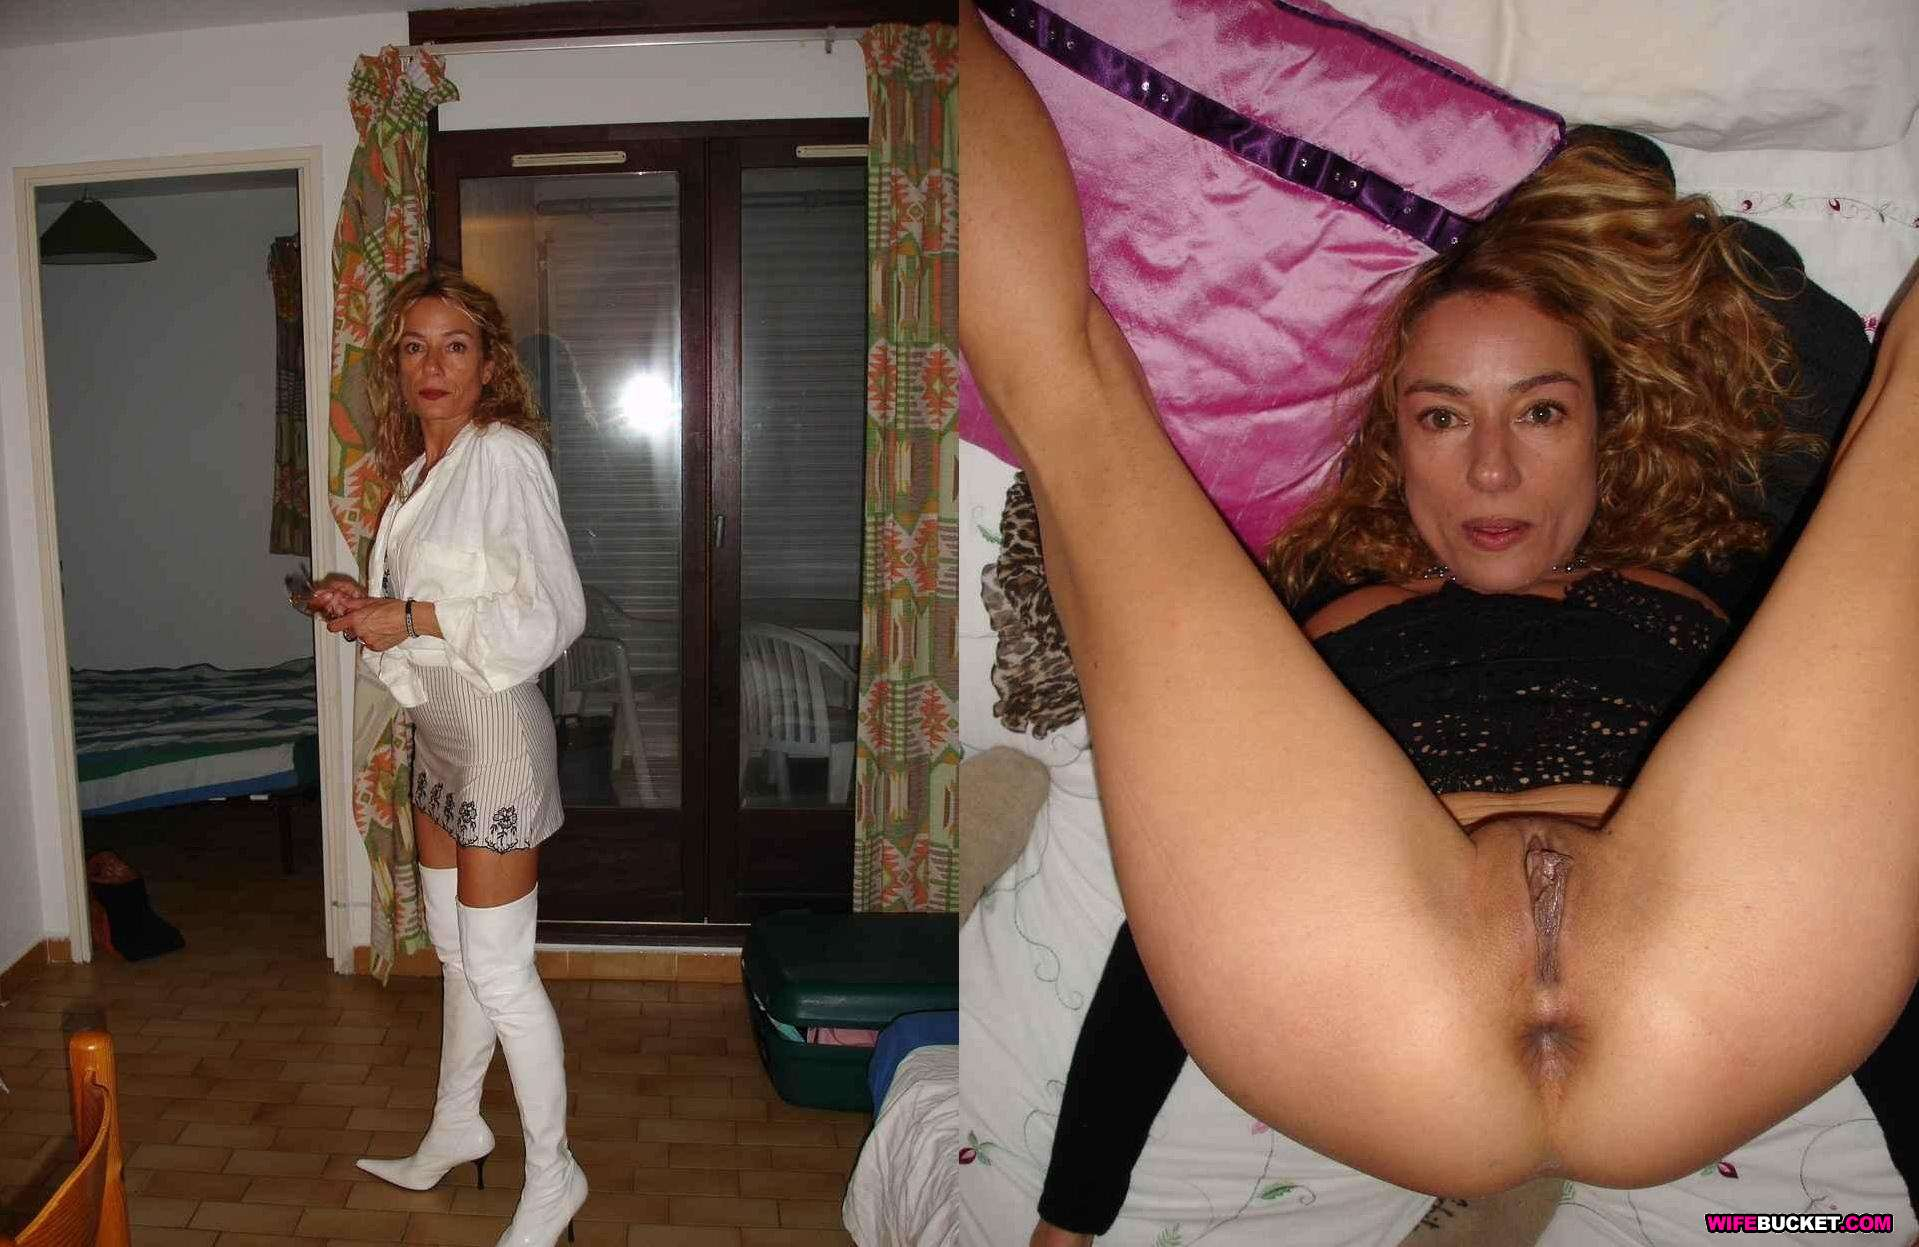 Milf nude wife before after right! seems